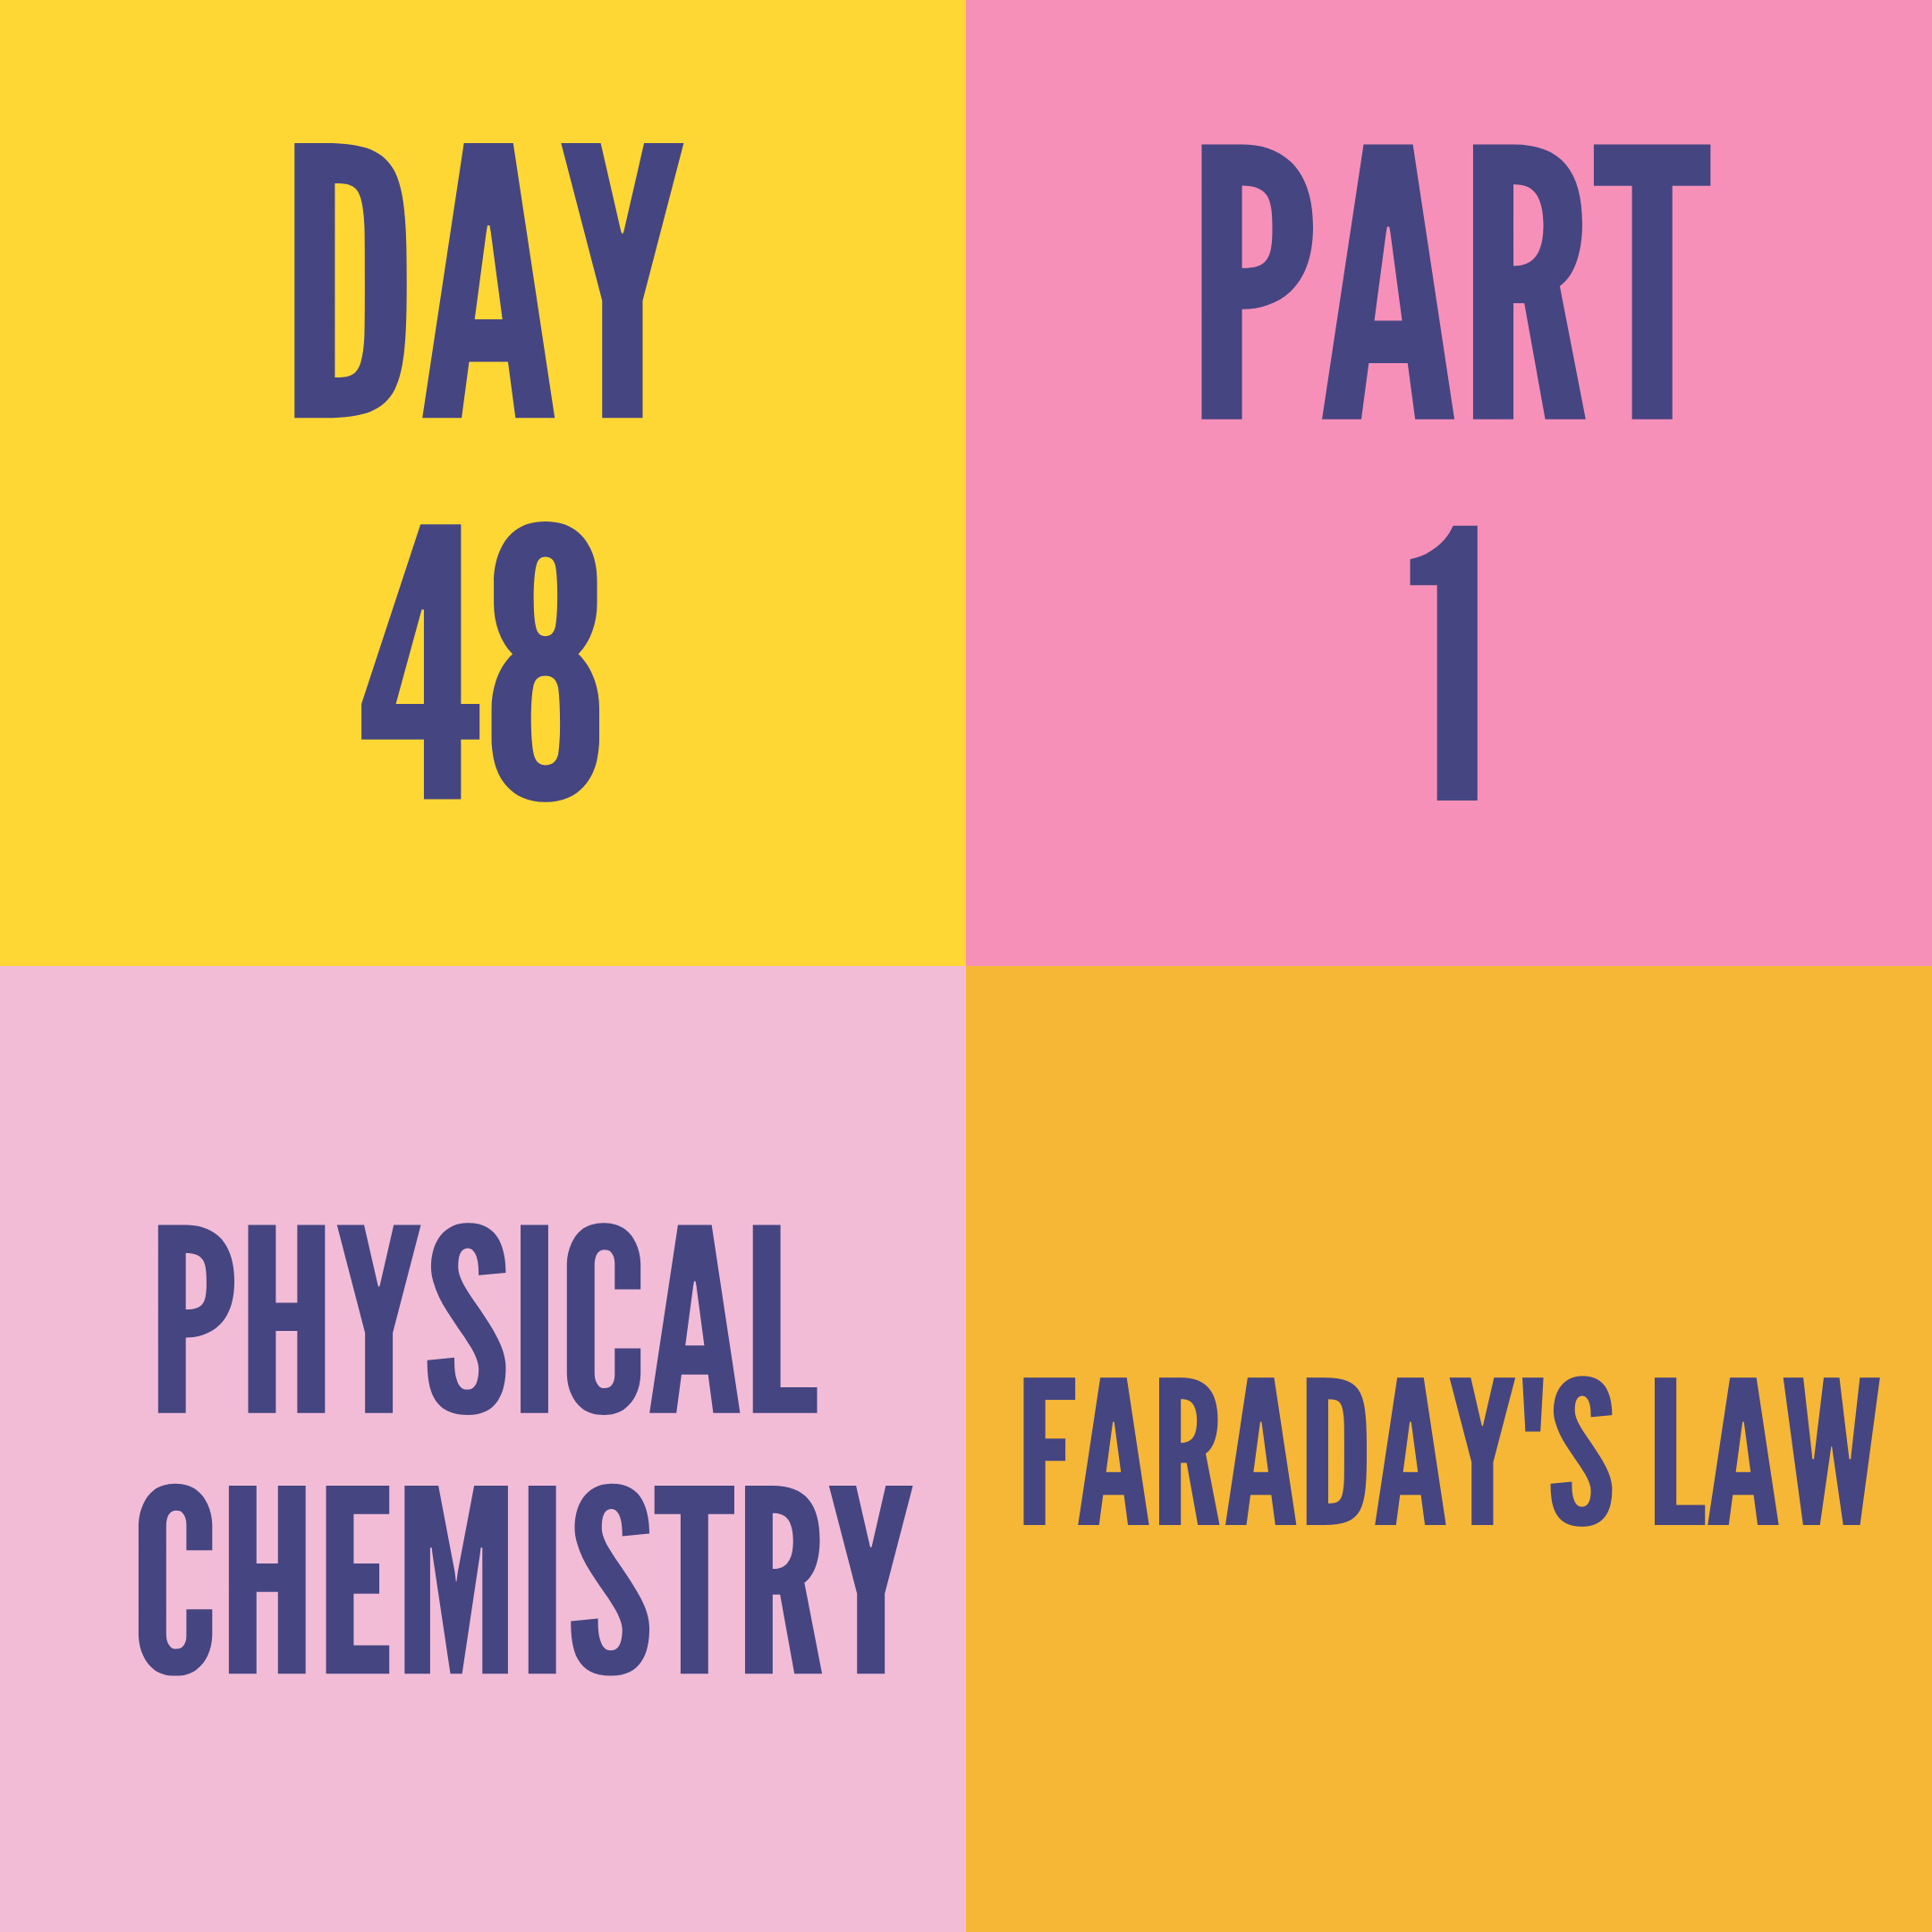 DAY-48 PART-1 FARADAY'S LAW